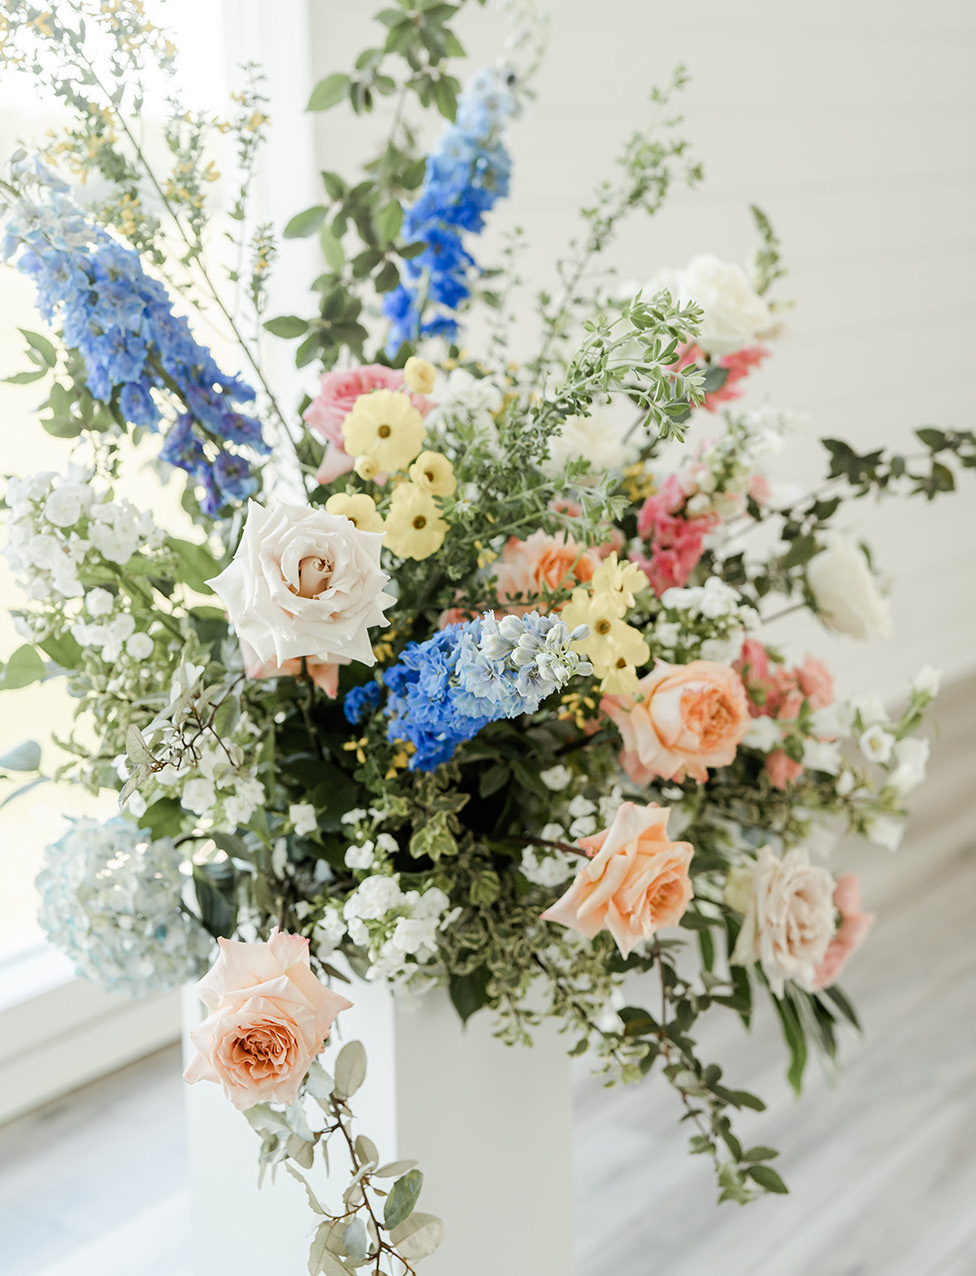 Vibrant flowers in blue, yellow and peach are designed in an arrangement on the altar.